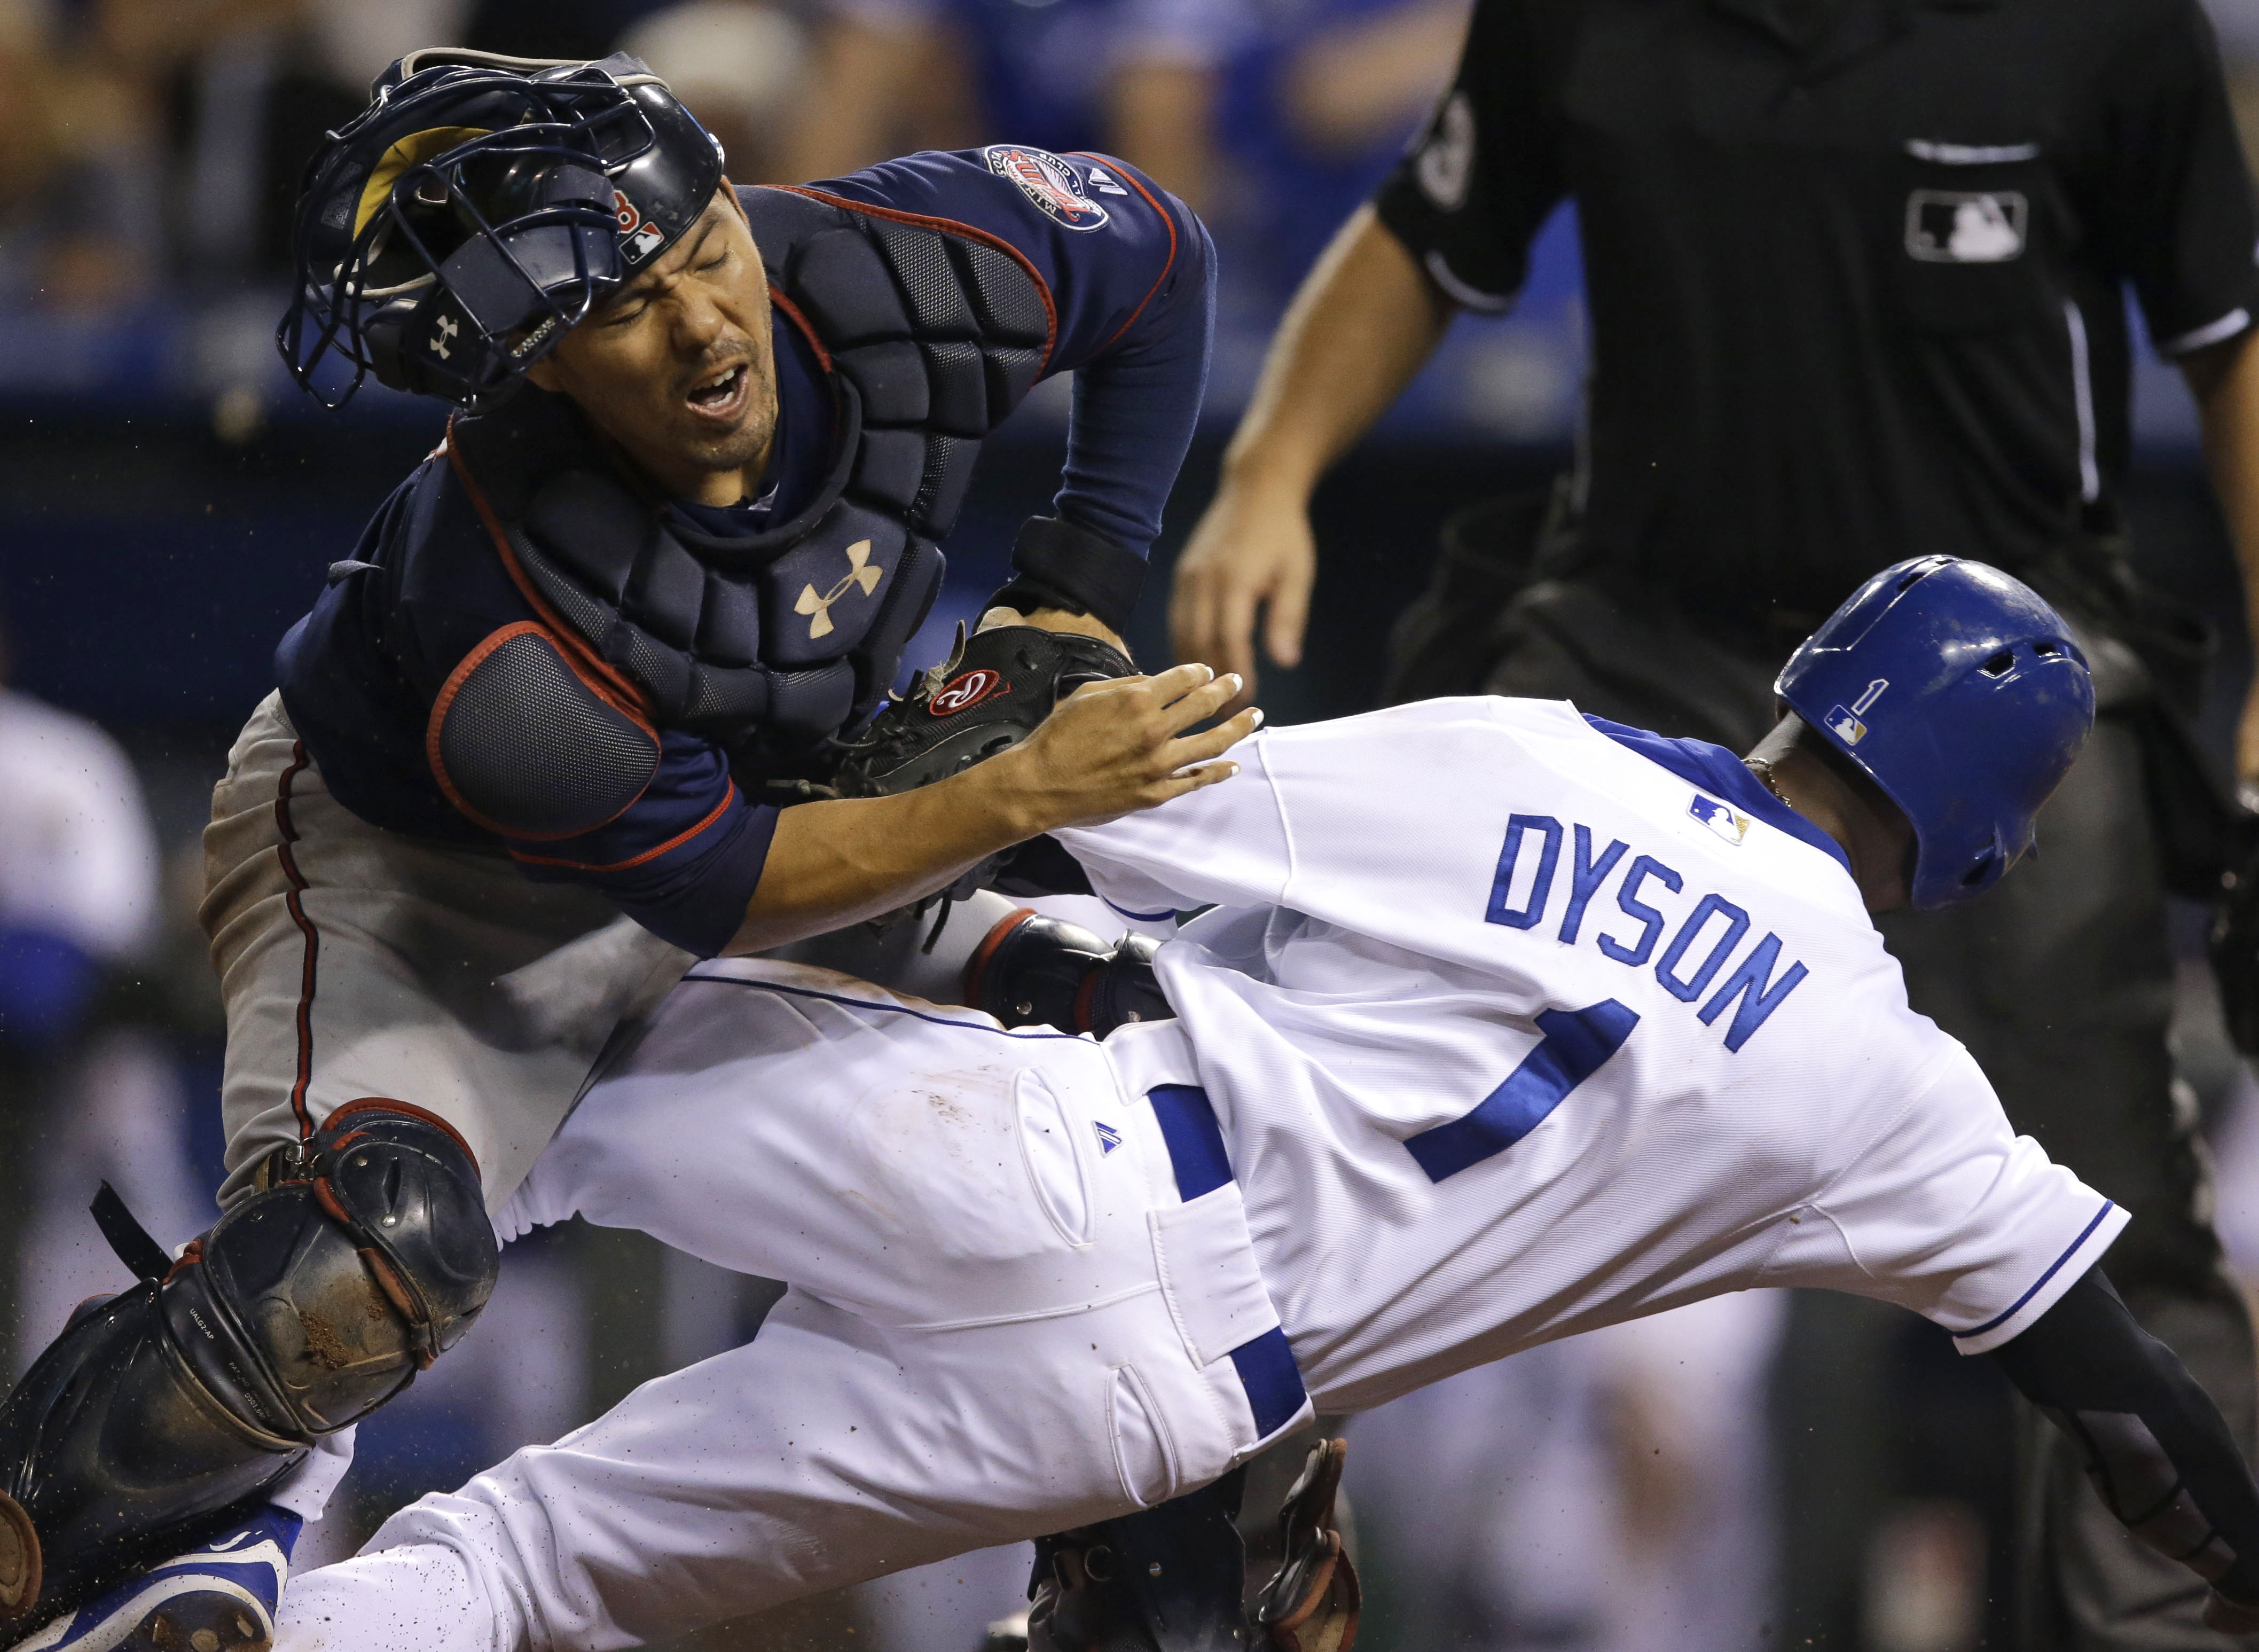 Minnesota Twins catcher Kurt Suzuki, left, tags out Kansas City Royals' Jarrod Dyson (1) during the 10th inning of a baseball game at Kauffman Stadium in Kansas City, Mo., Wednesday, Sept. 9, 2015. Suzuki was injured on the play. (AP Photo/Orlin Wagner)